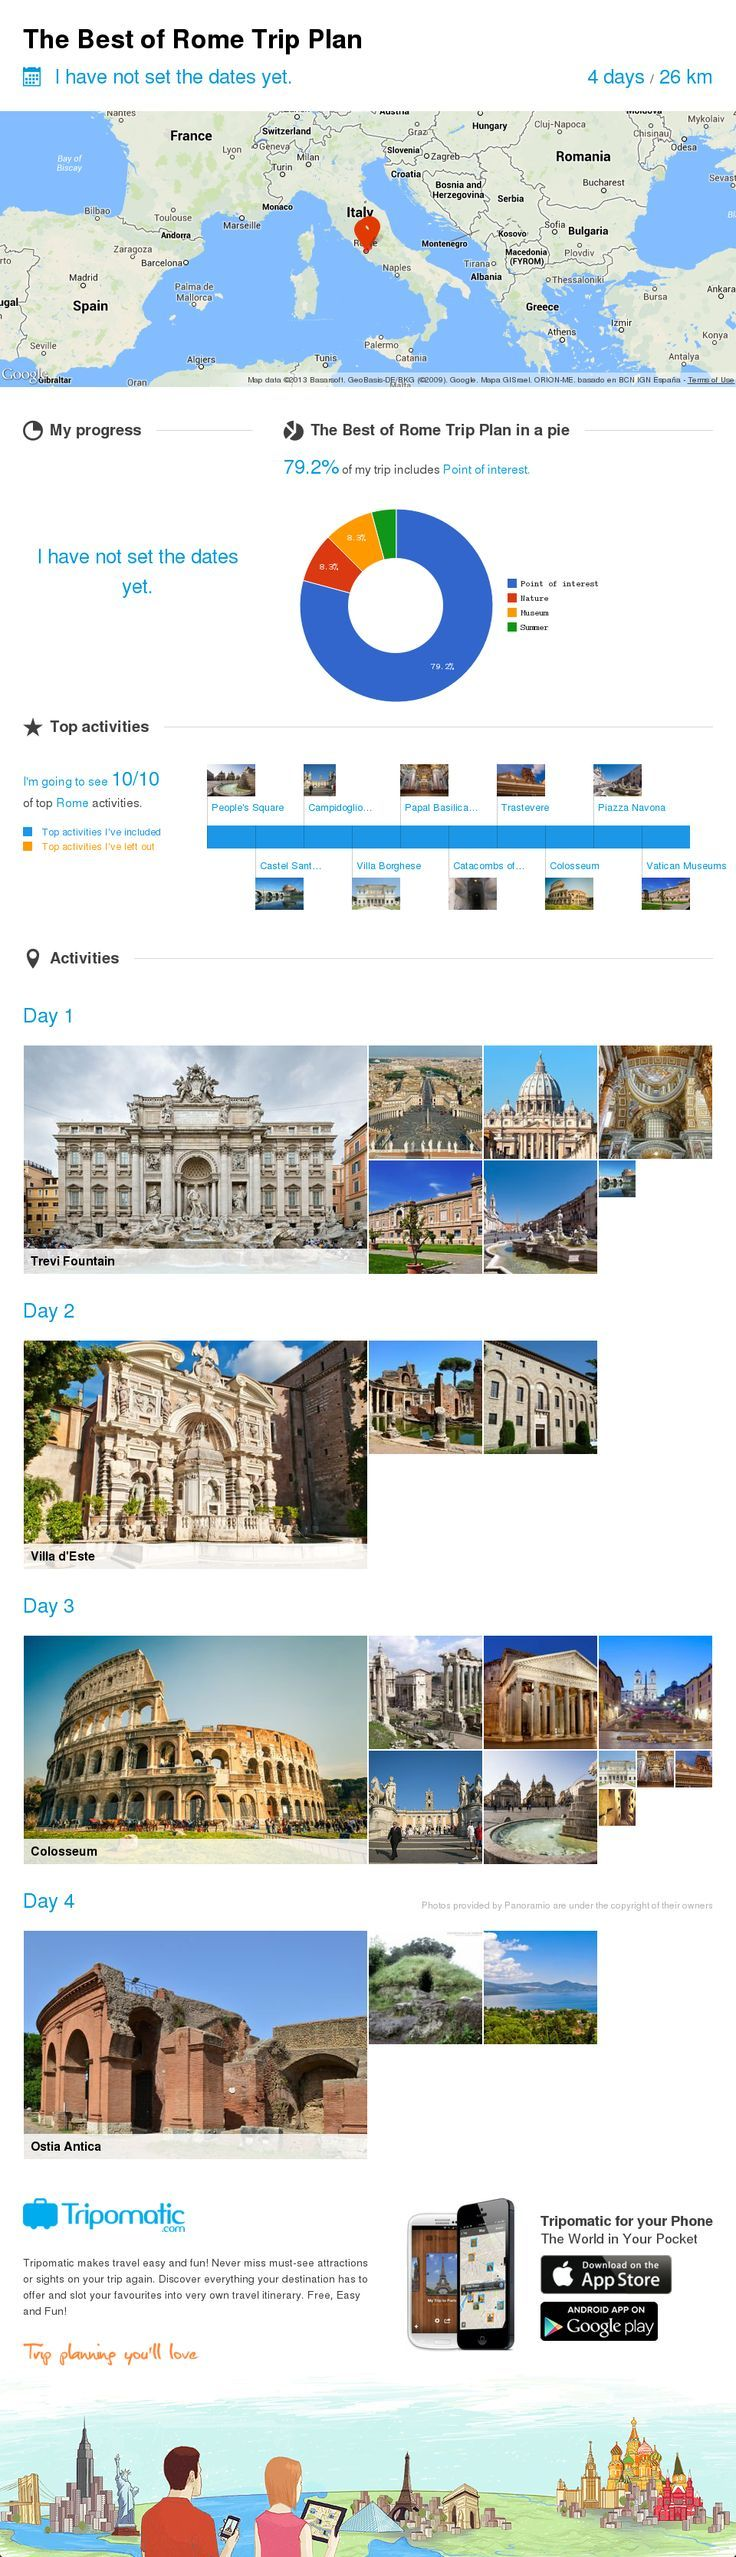 Check out my awesome trip to Rome and get recommendations for 4-day trip. Edit this trip at http://www.tripomatic.com